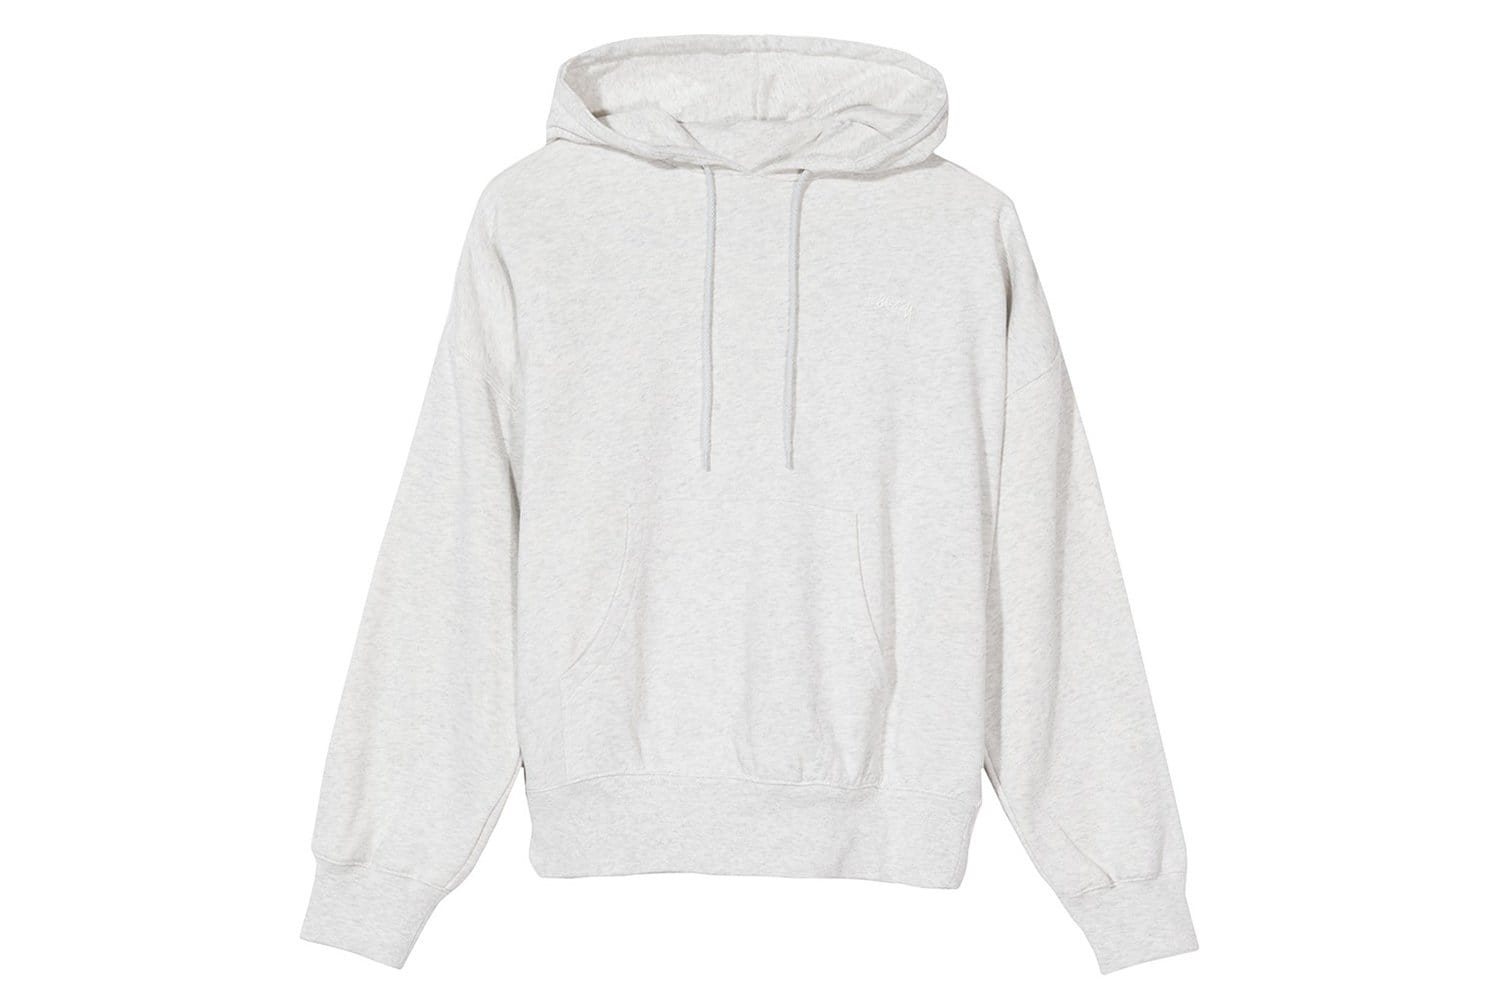 VIOLET FRENCH TERRY HOODIE - 218070 WOMENS SOFTGOODS STUSSY ASH HEATHER L